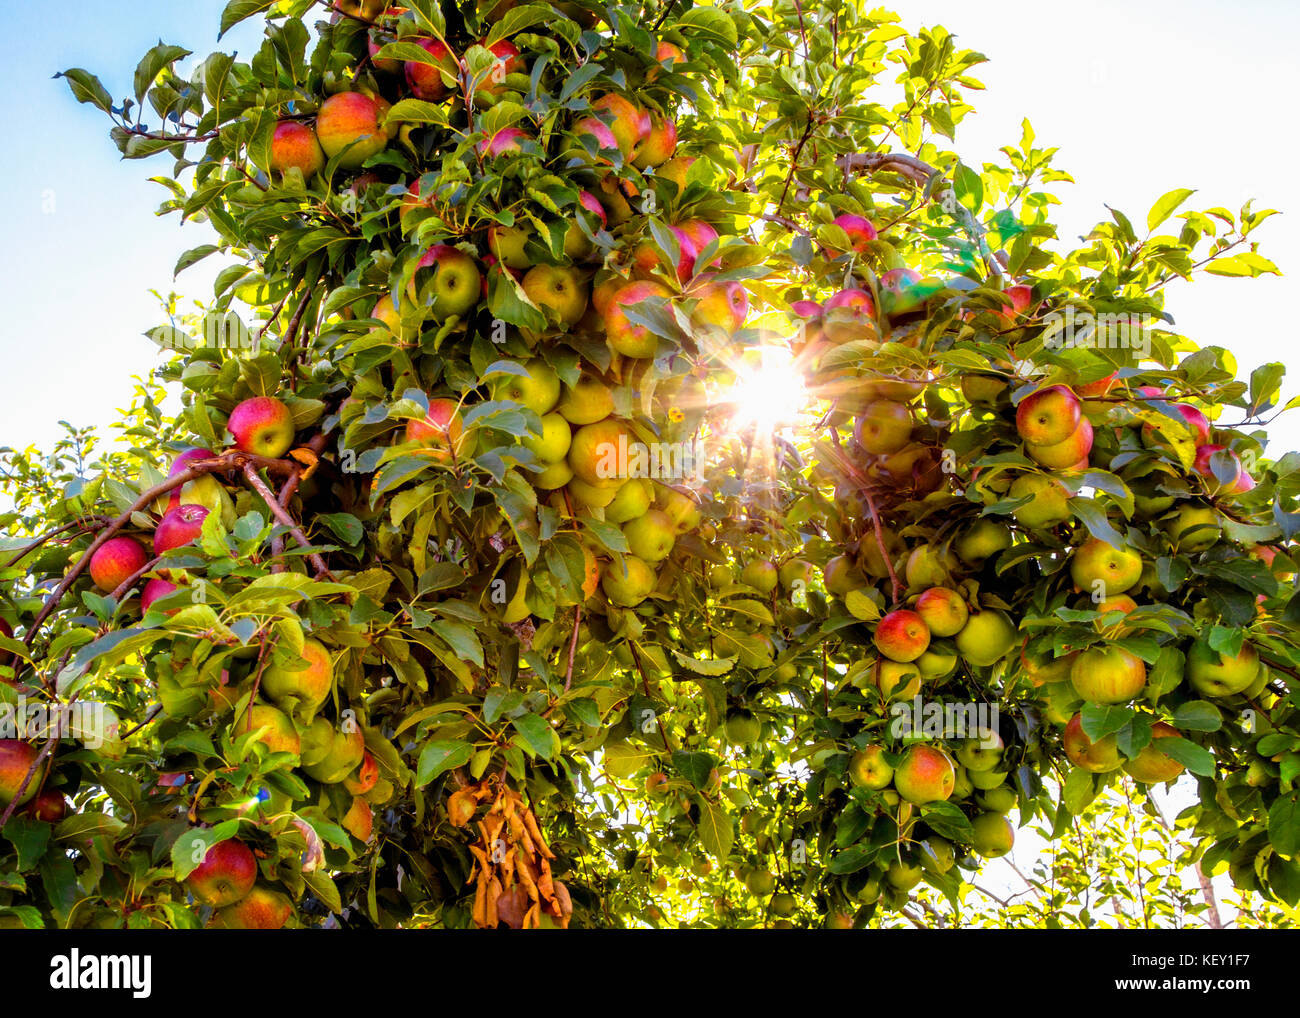 The sun shines through as apple tree with ripe red apples - Stock Image